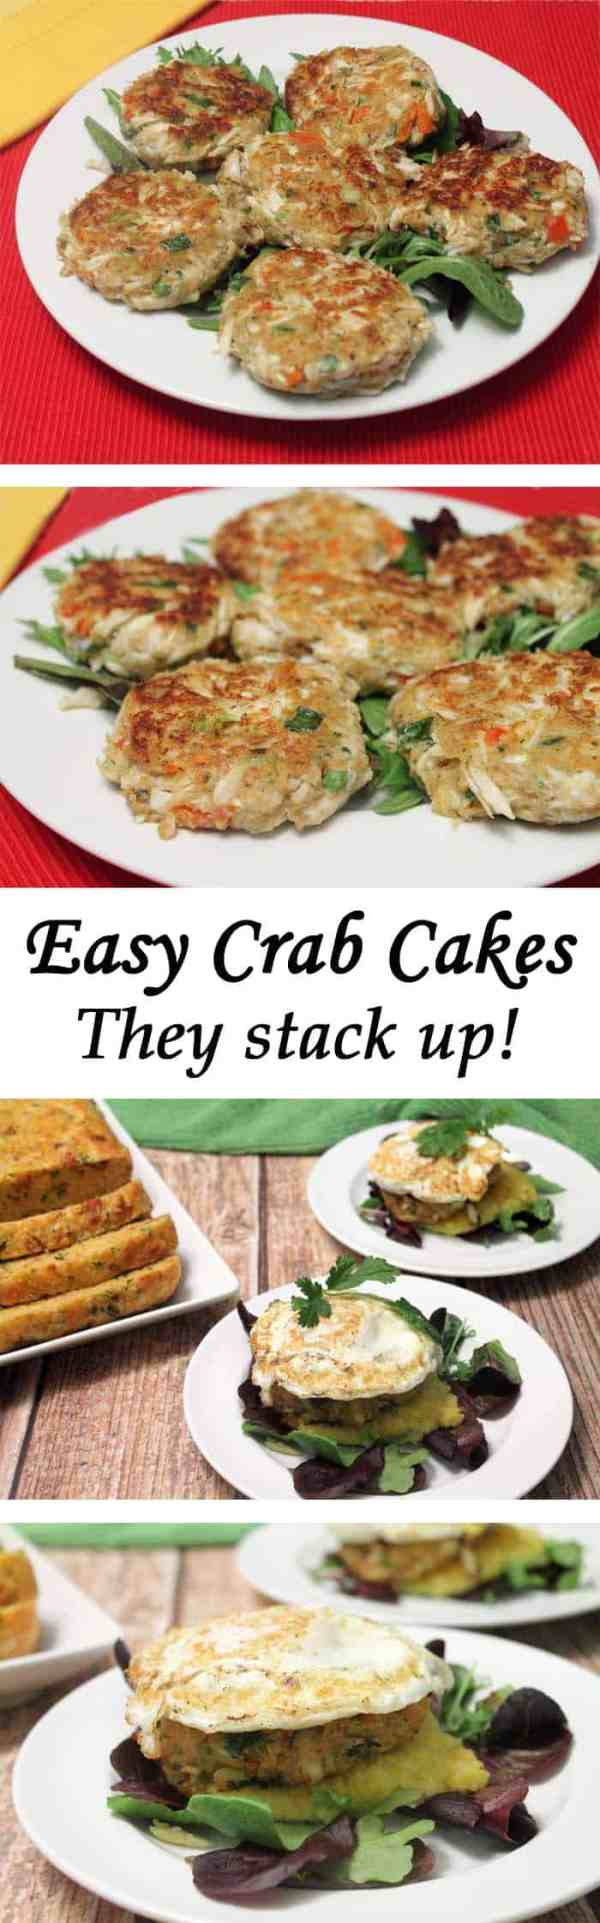 Crab Cakes | 2CookinMamas Quick & easy crab cakes you can plate as is or stack them up for an impressive meal. And you don't have to tell anyone how easy it was!